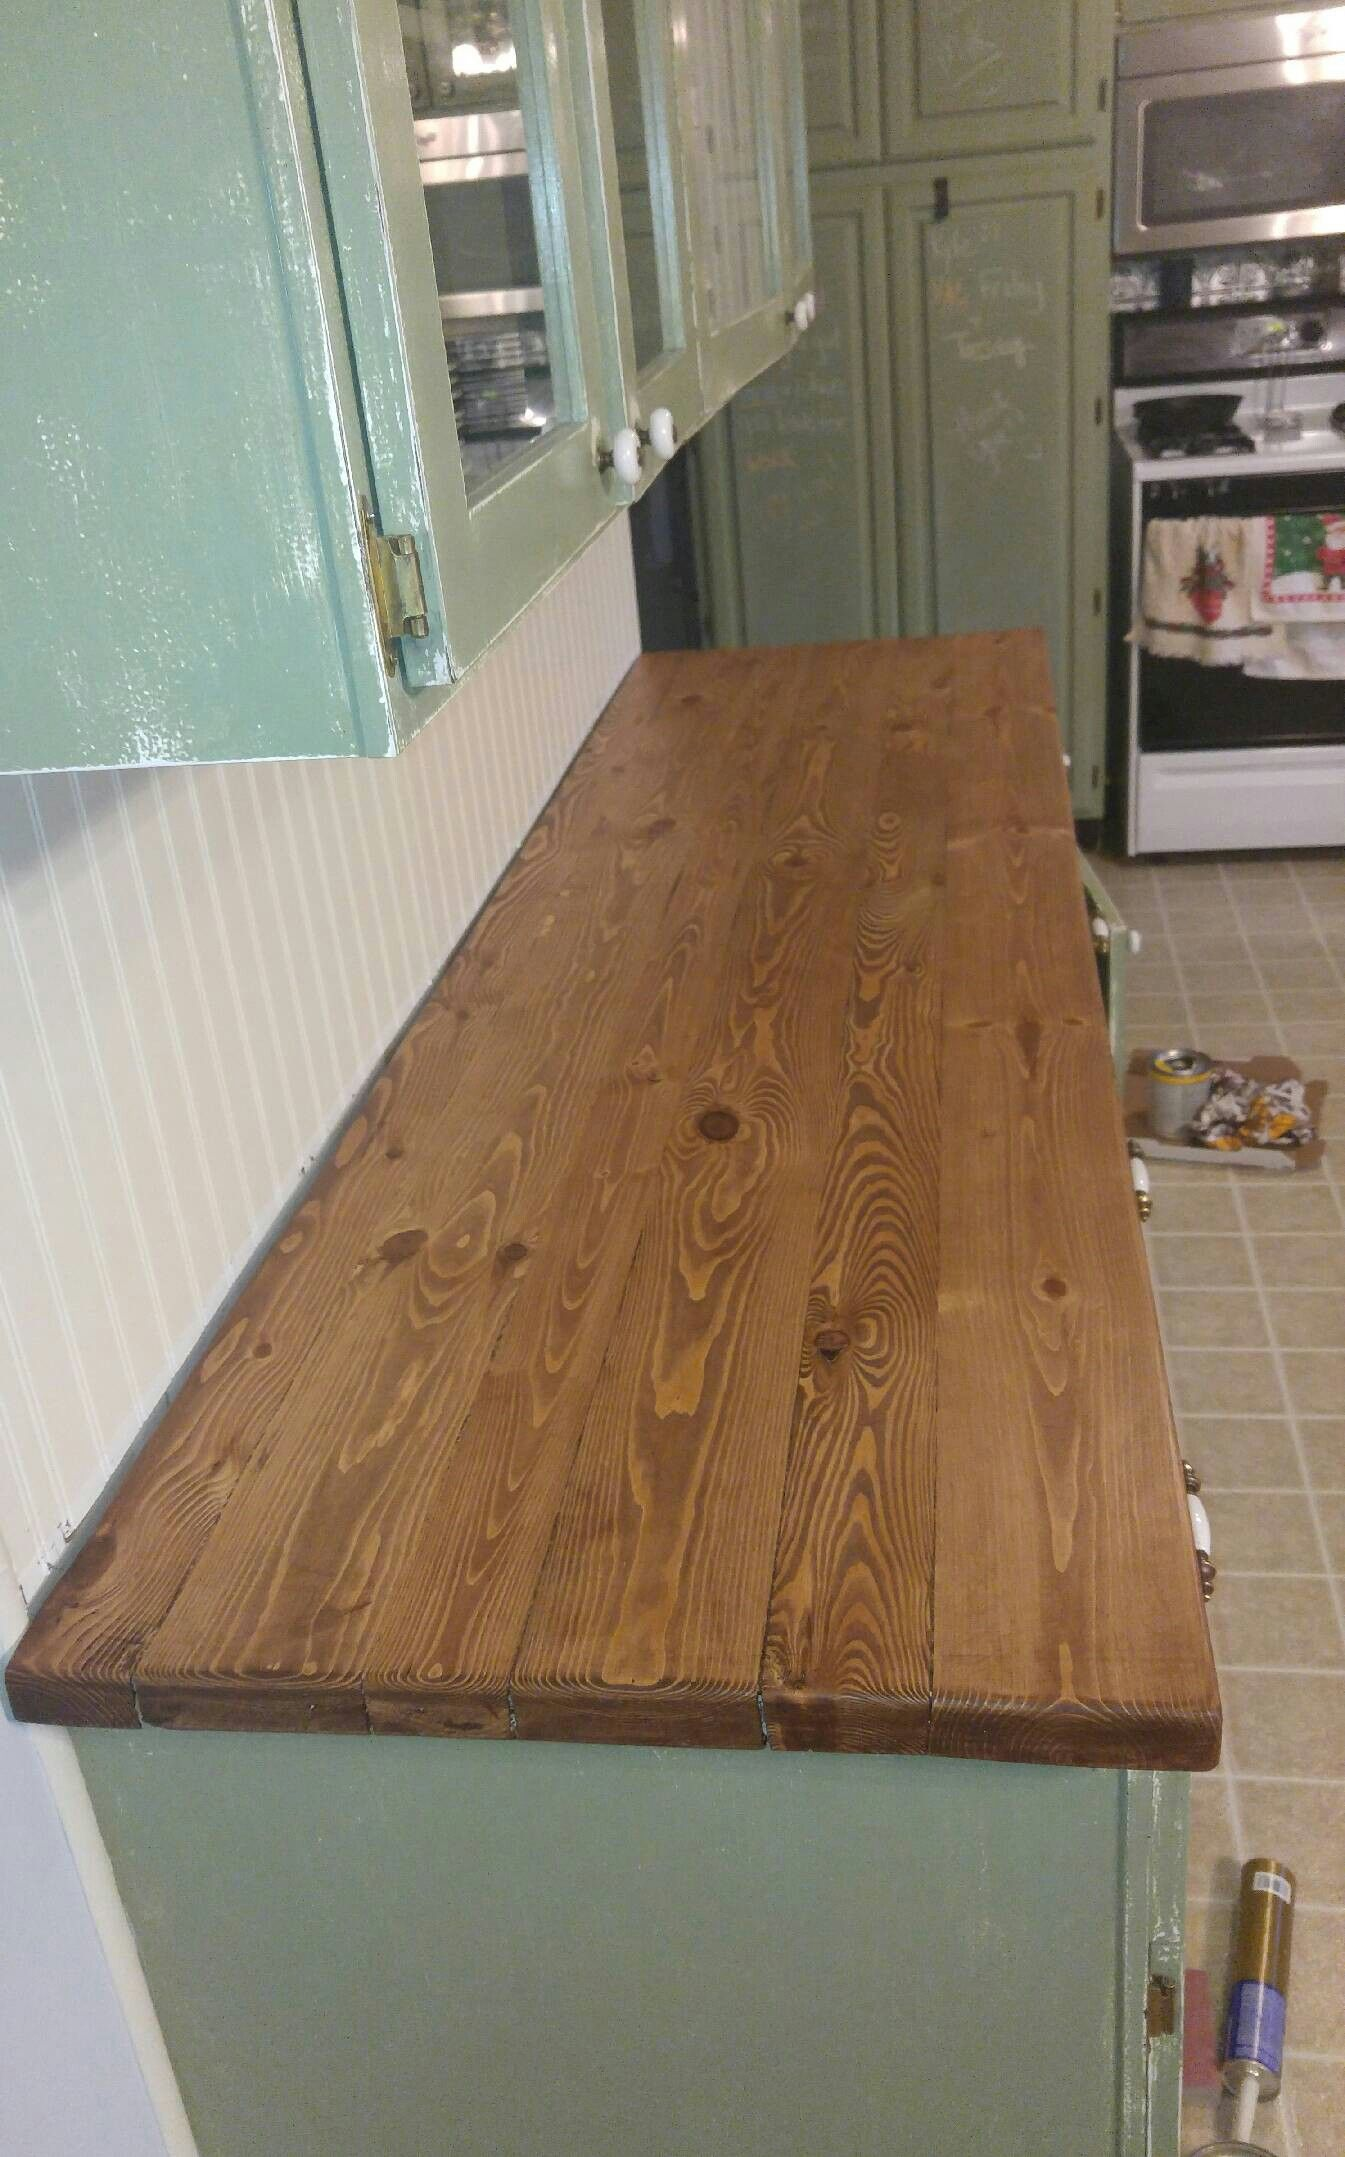 Wood 2x4 2x6 Countertop Do This In The Butlers Pantry But Add